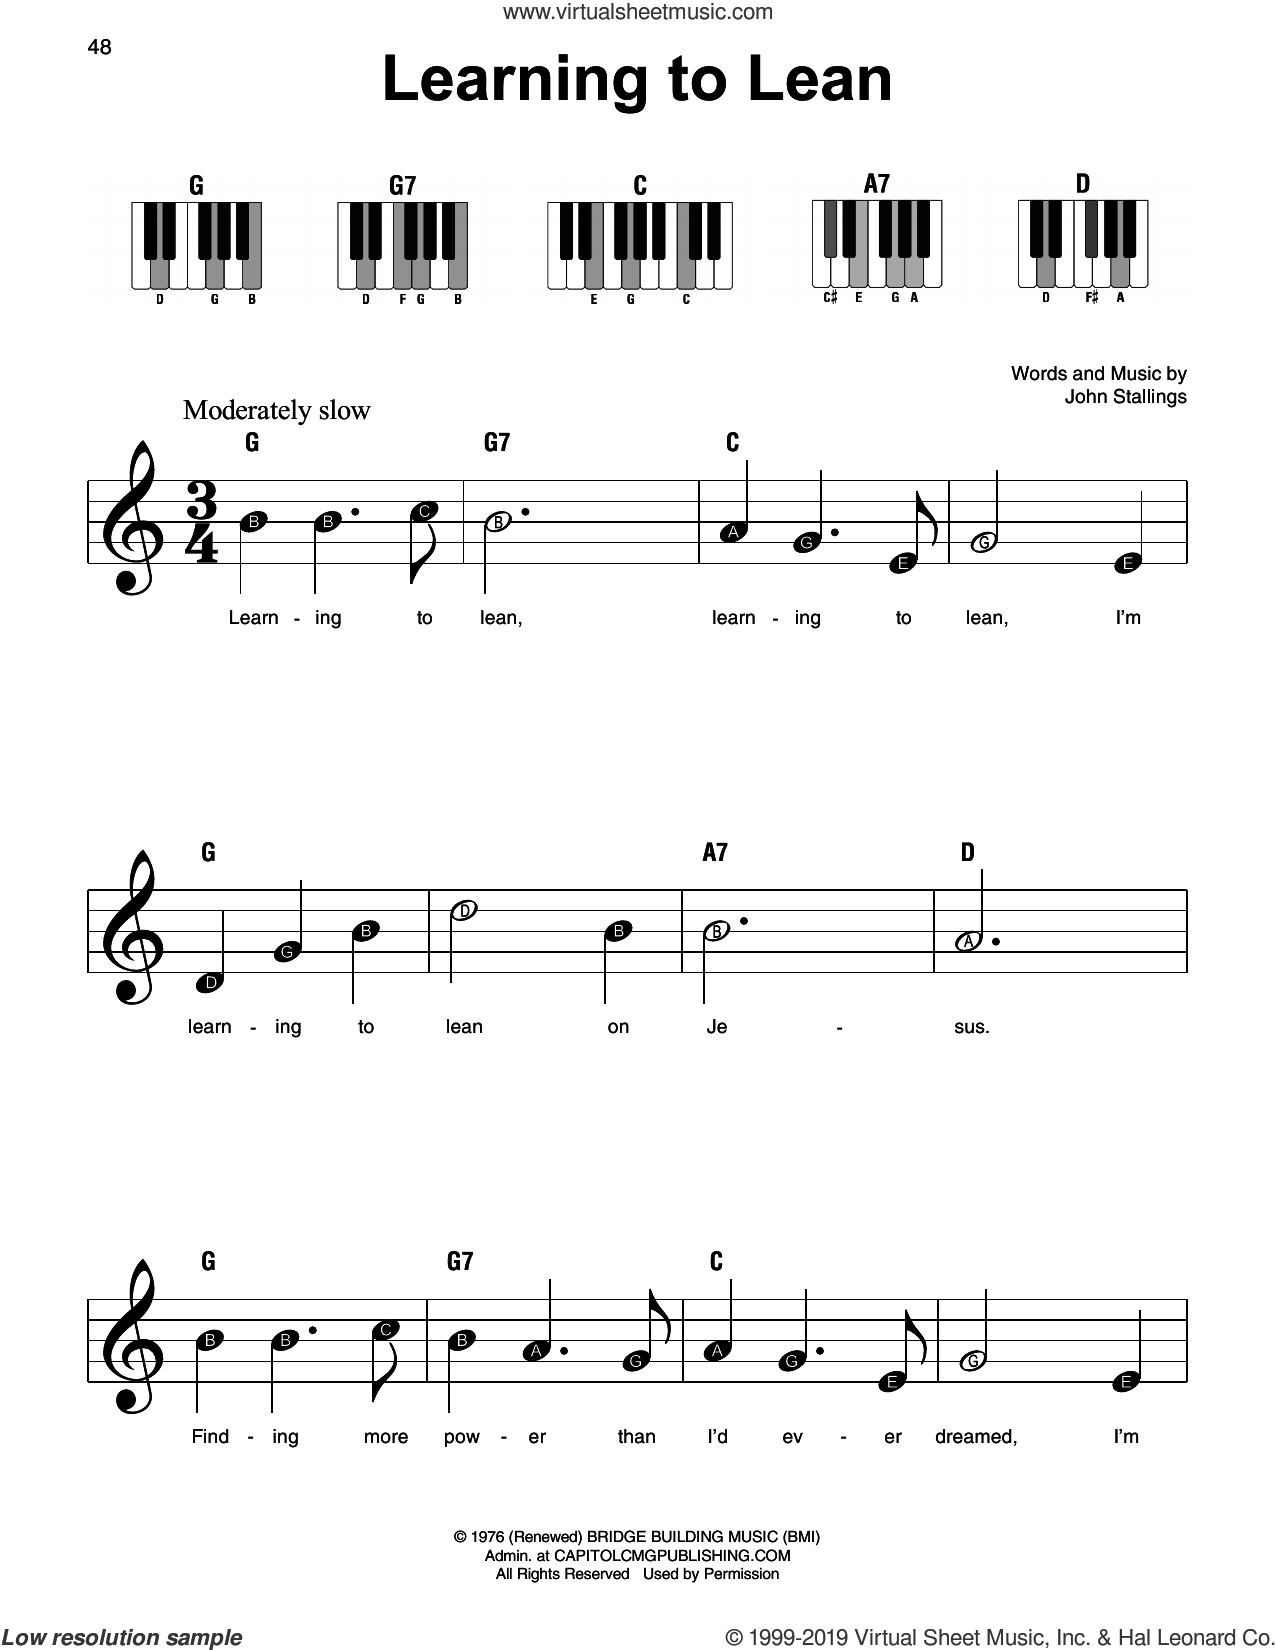 Learning To Lean sheet music for piano solo by John Stallings, beginner skill level